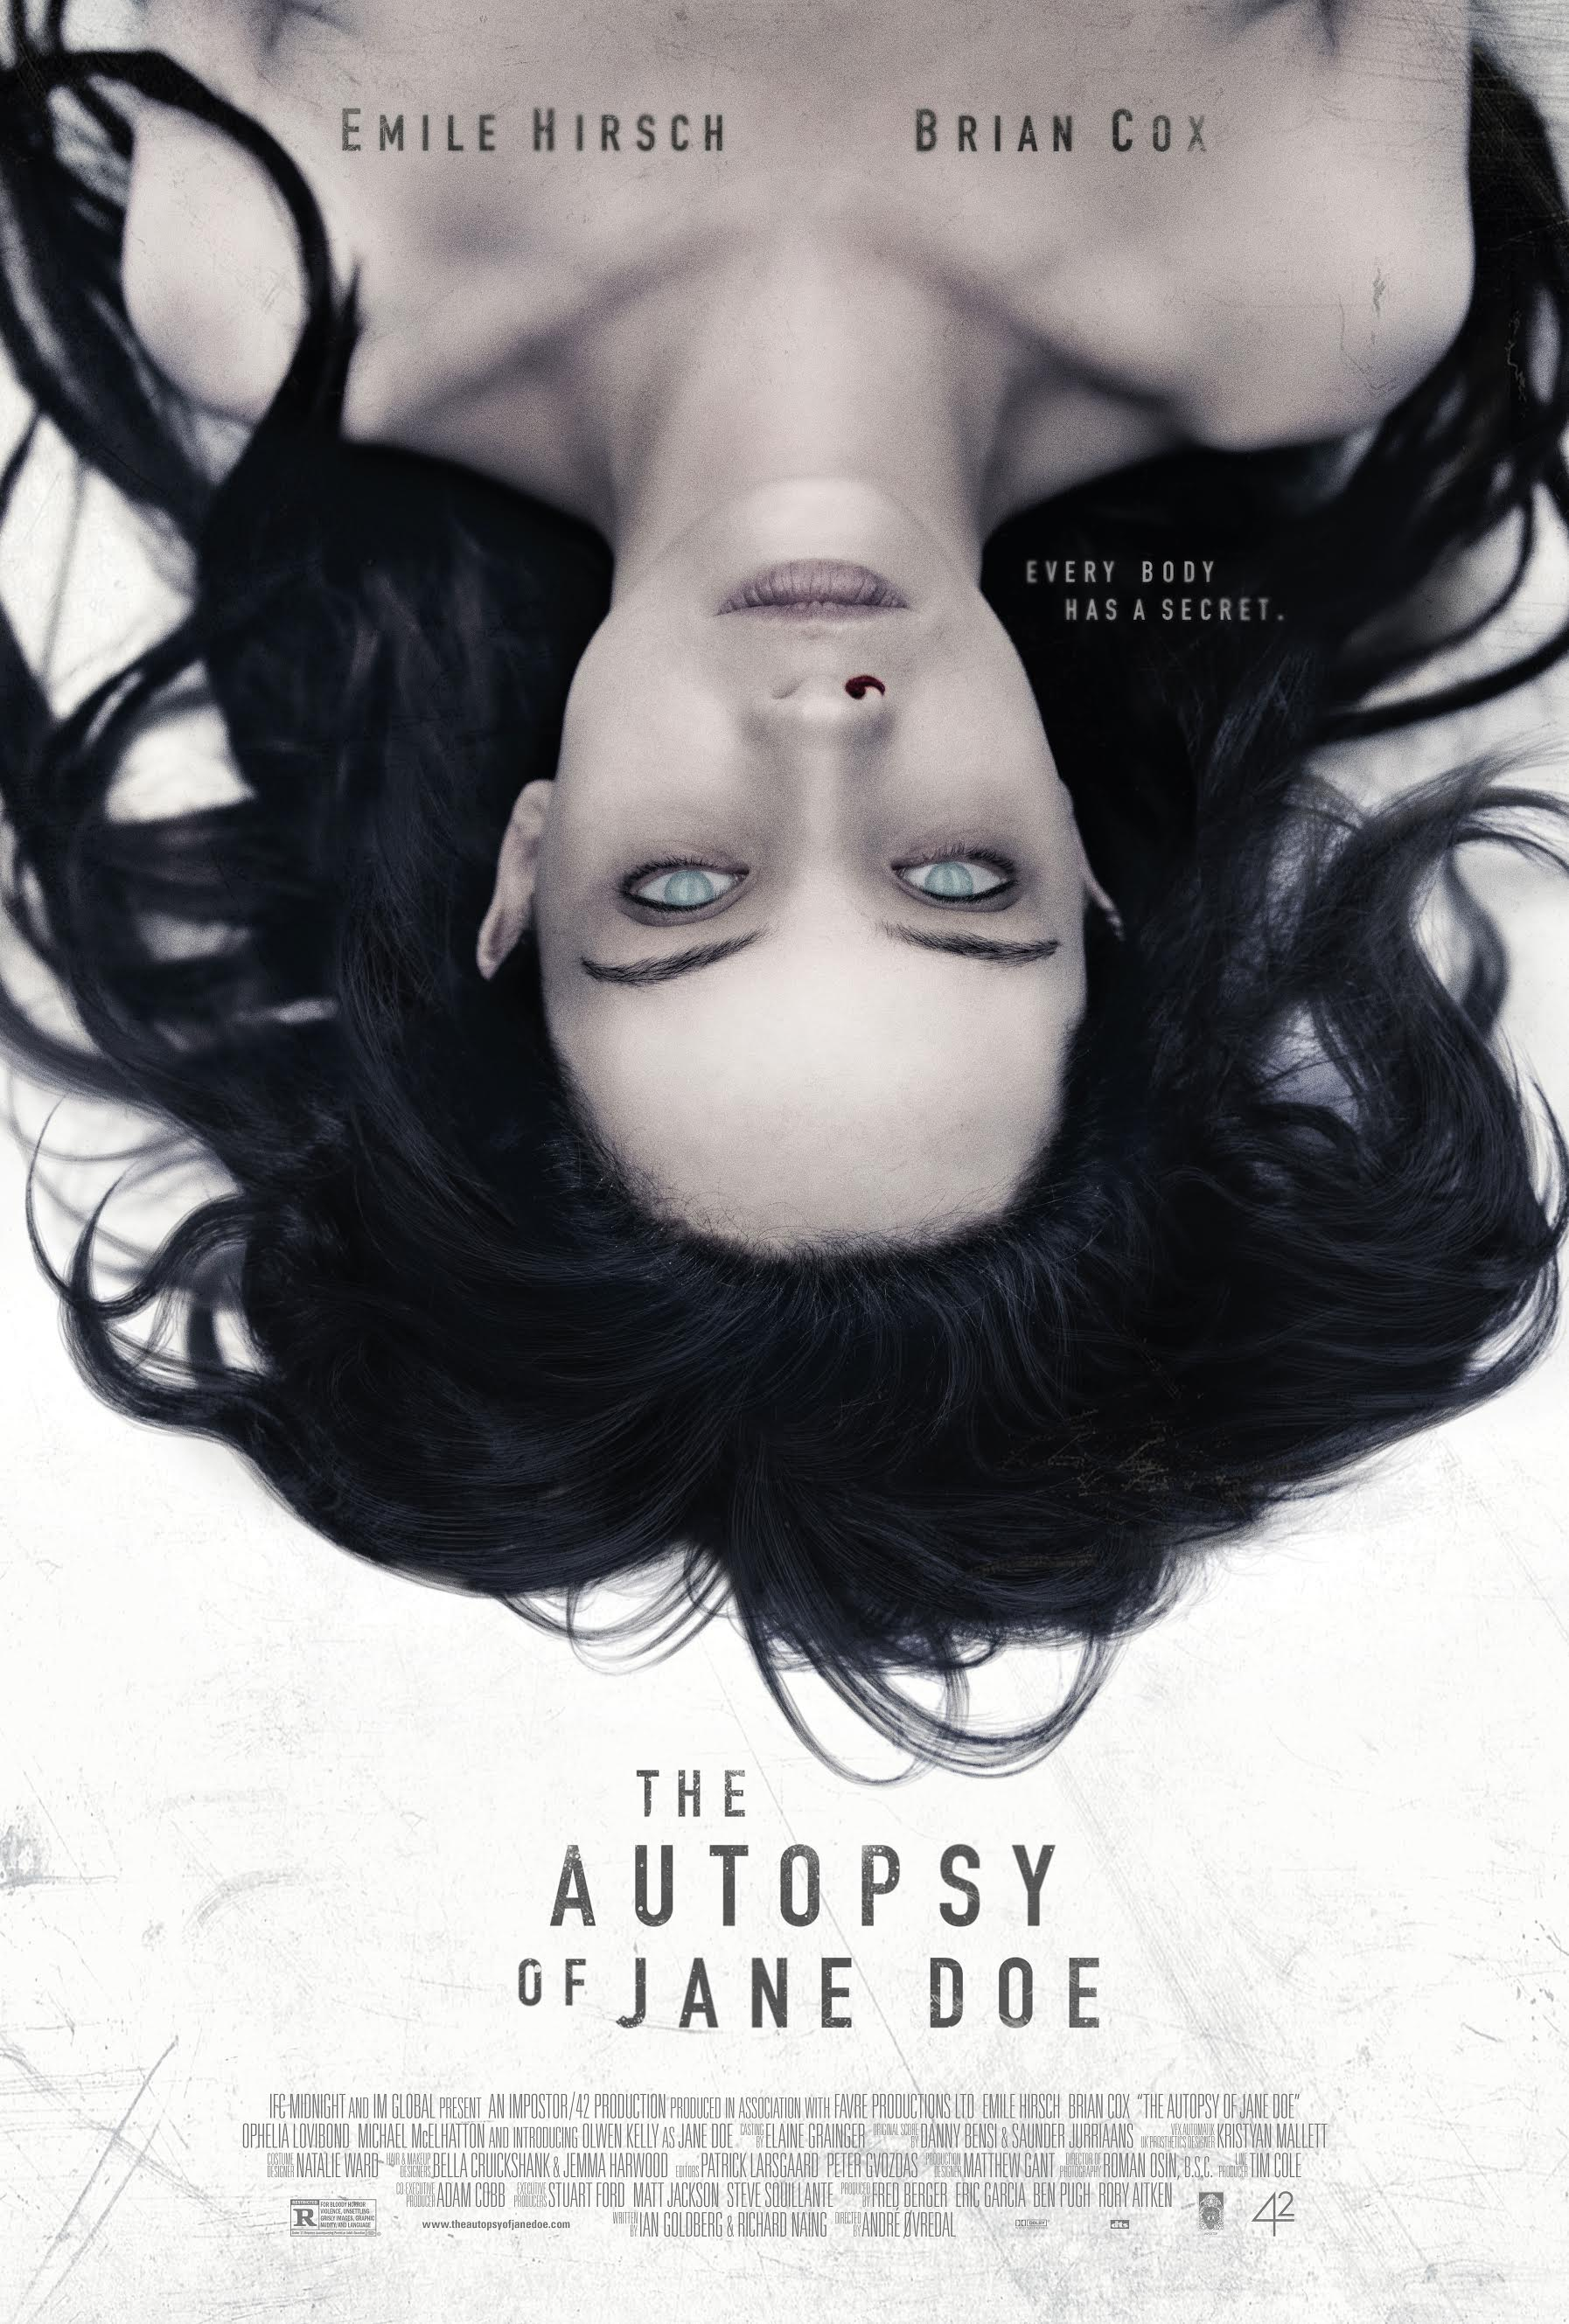 The Autopsy of Jane Doe (2016) - Directed by: Andre OvredalStarring: Brian Cox, Emile Hirsch, Ophelia LovibondRated: R for Bloody Horror Violence, Unsettling Grisly Images, Graphic Nudity, and LanguageRunning Time: 1 h 26 mTMM Score: 3 stars out of 5STRENGTHS: Brian Cox, Effects, Atmosphere, Simplicity of StoryWEAKNESSES: Emile Hirsch, Some Dialogue